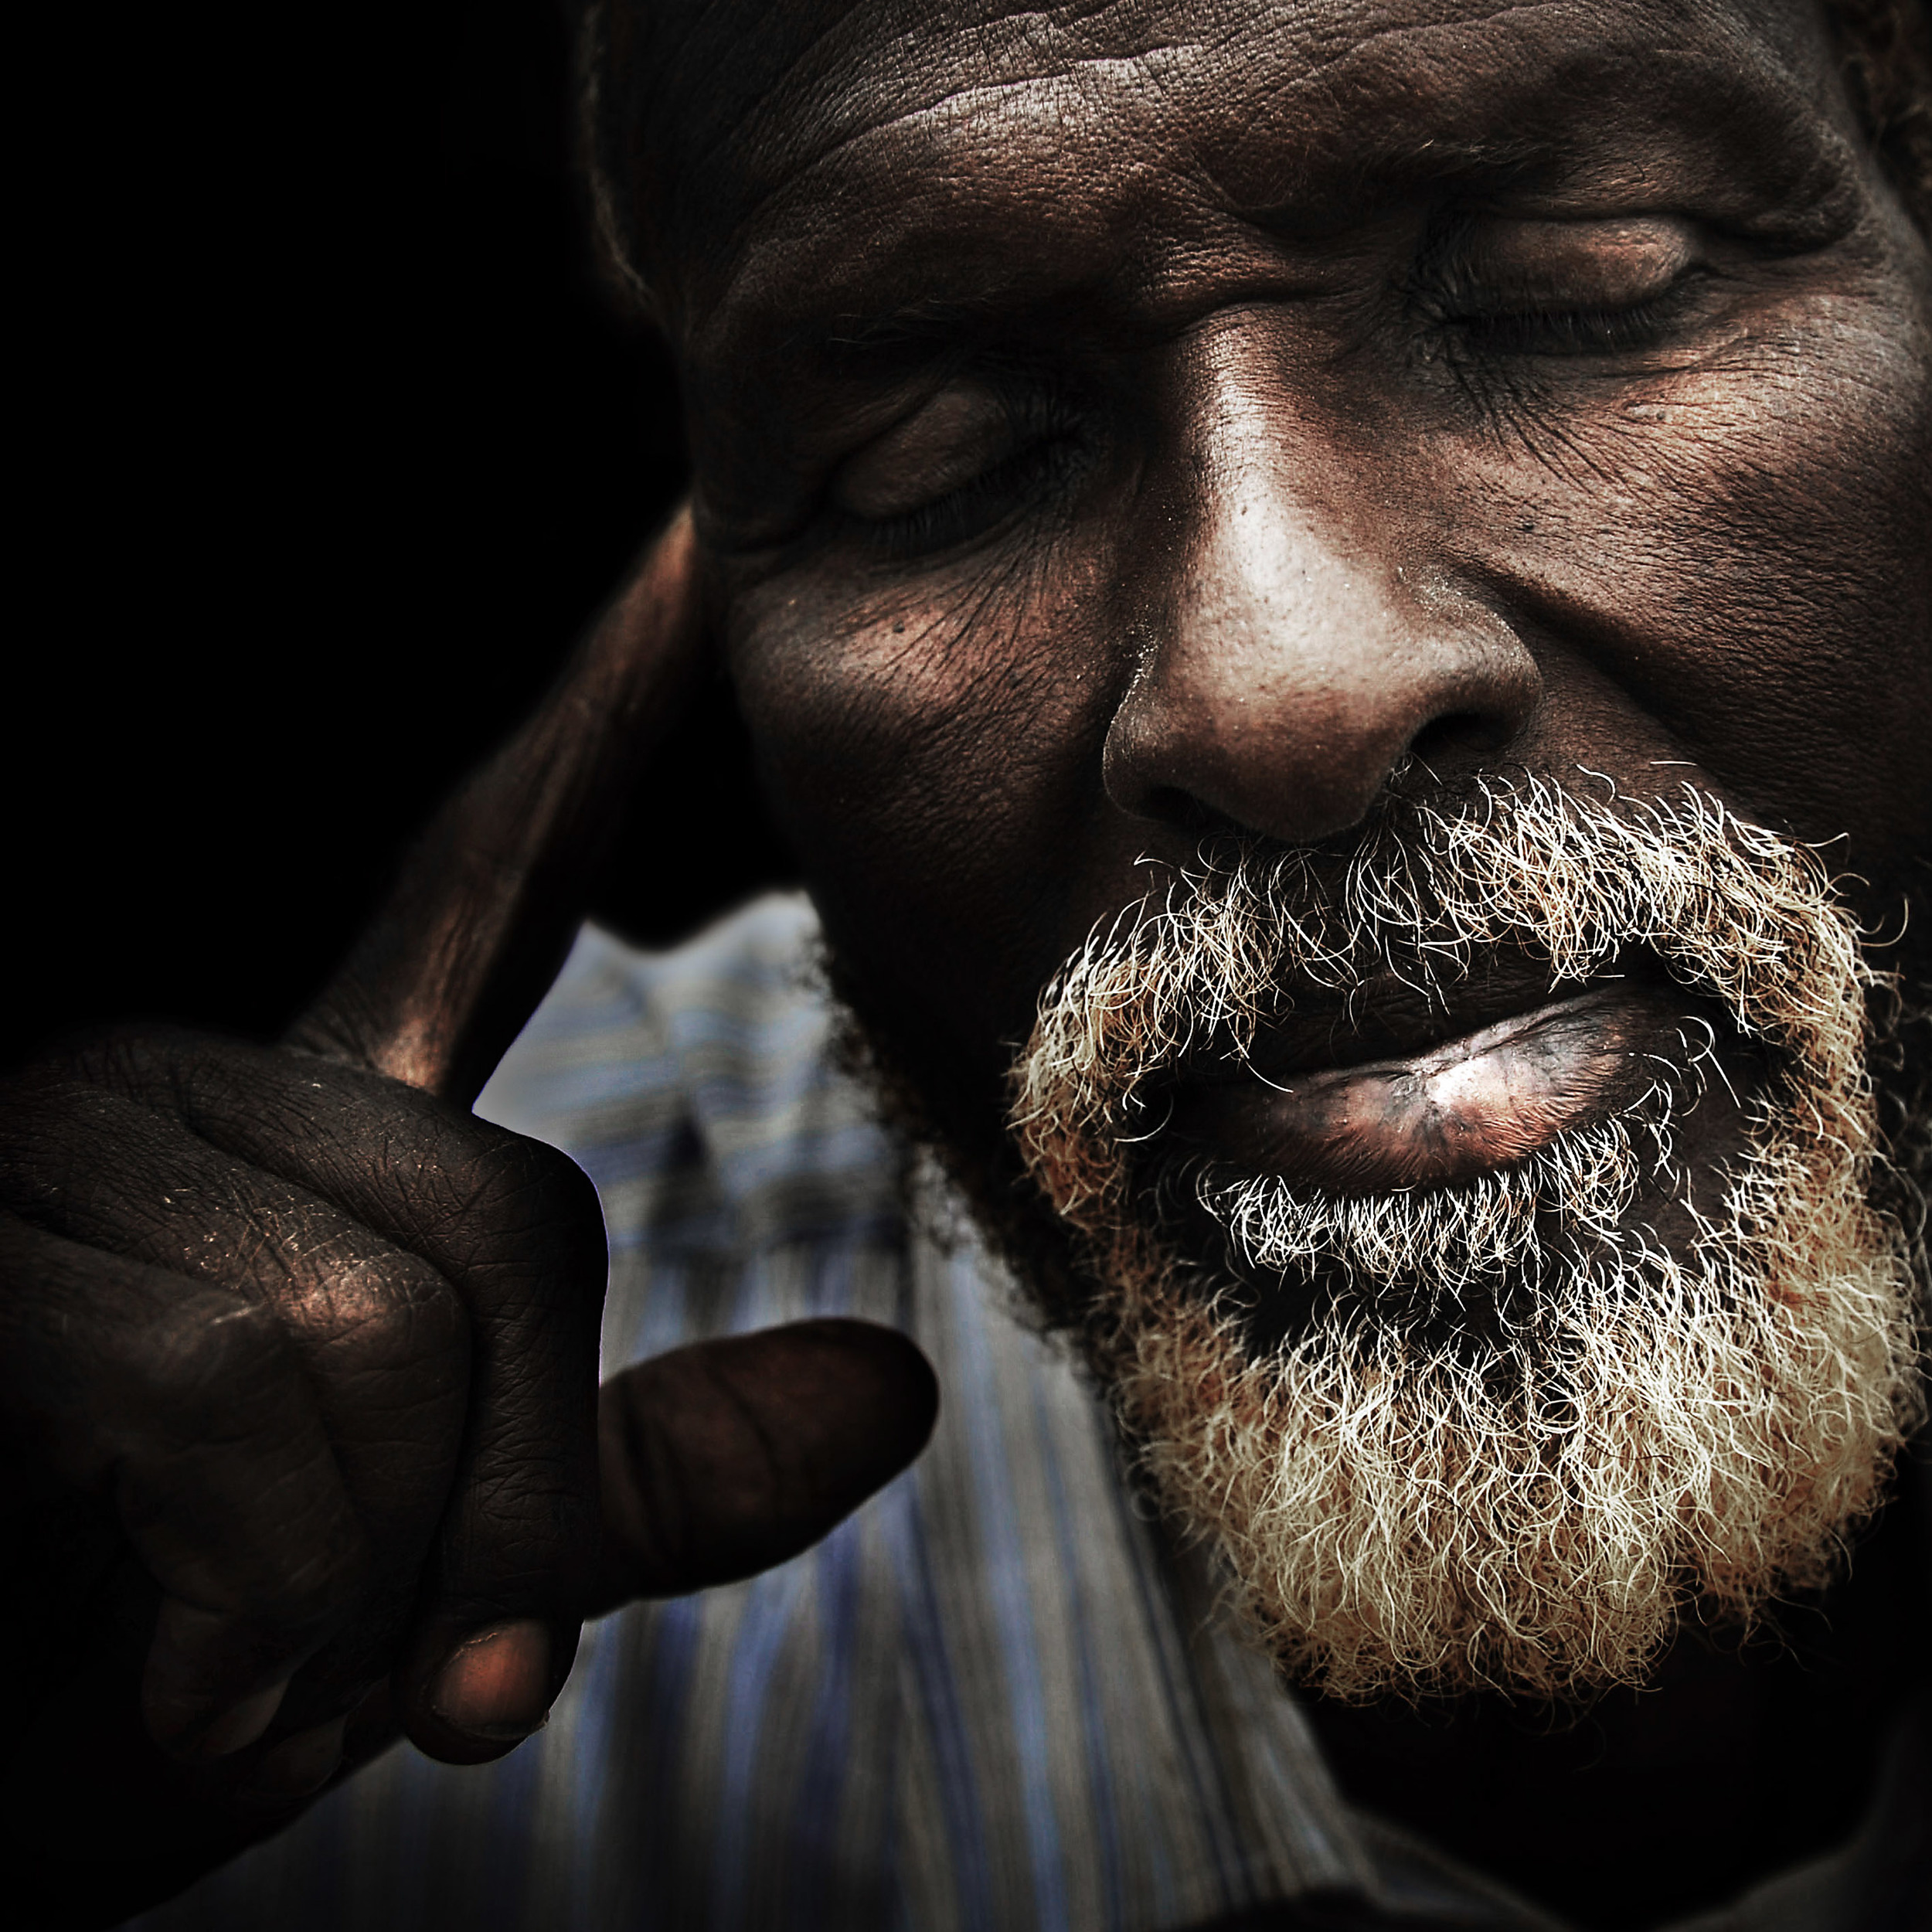 A Somali man at a refugee camp in Dadaab. From the neighbouring country of Somalia an estimated 8000 refugees cross the border each month to escape the desperate living conditions.